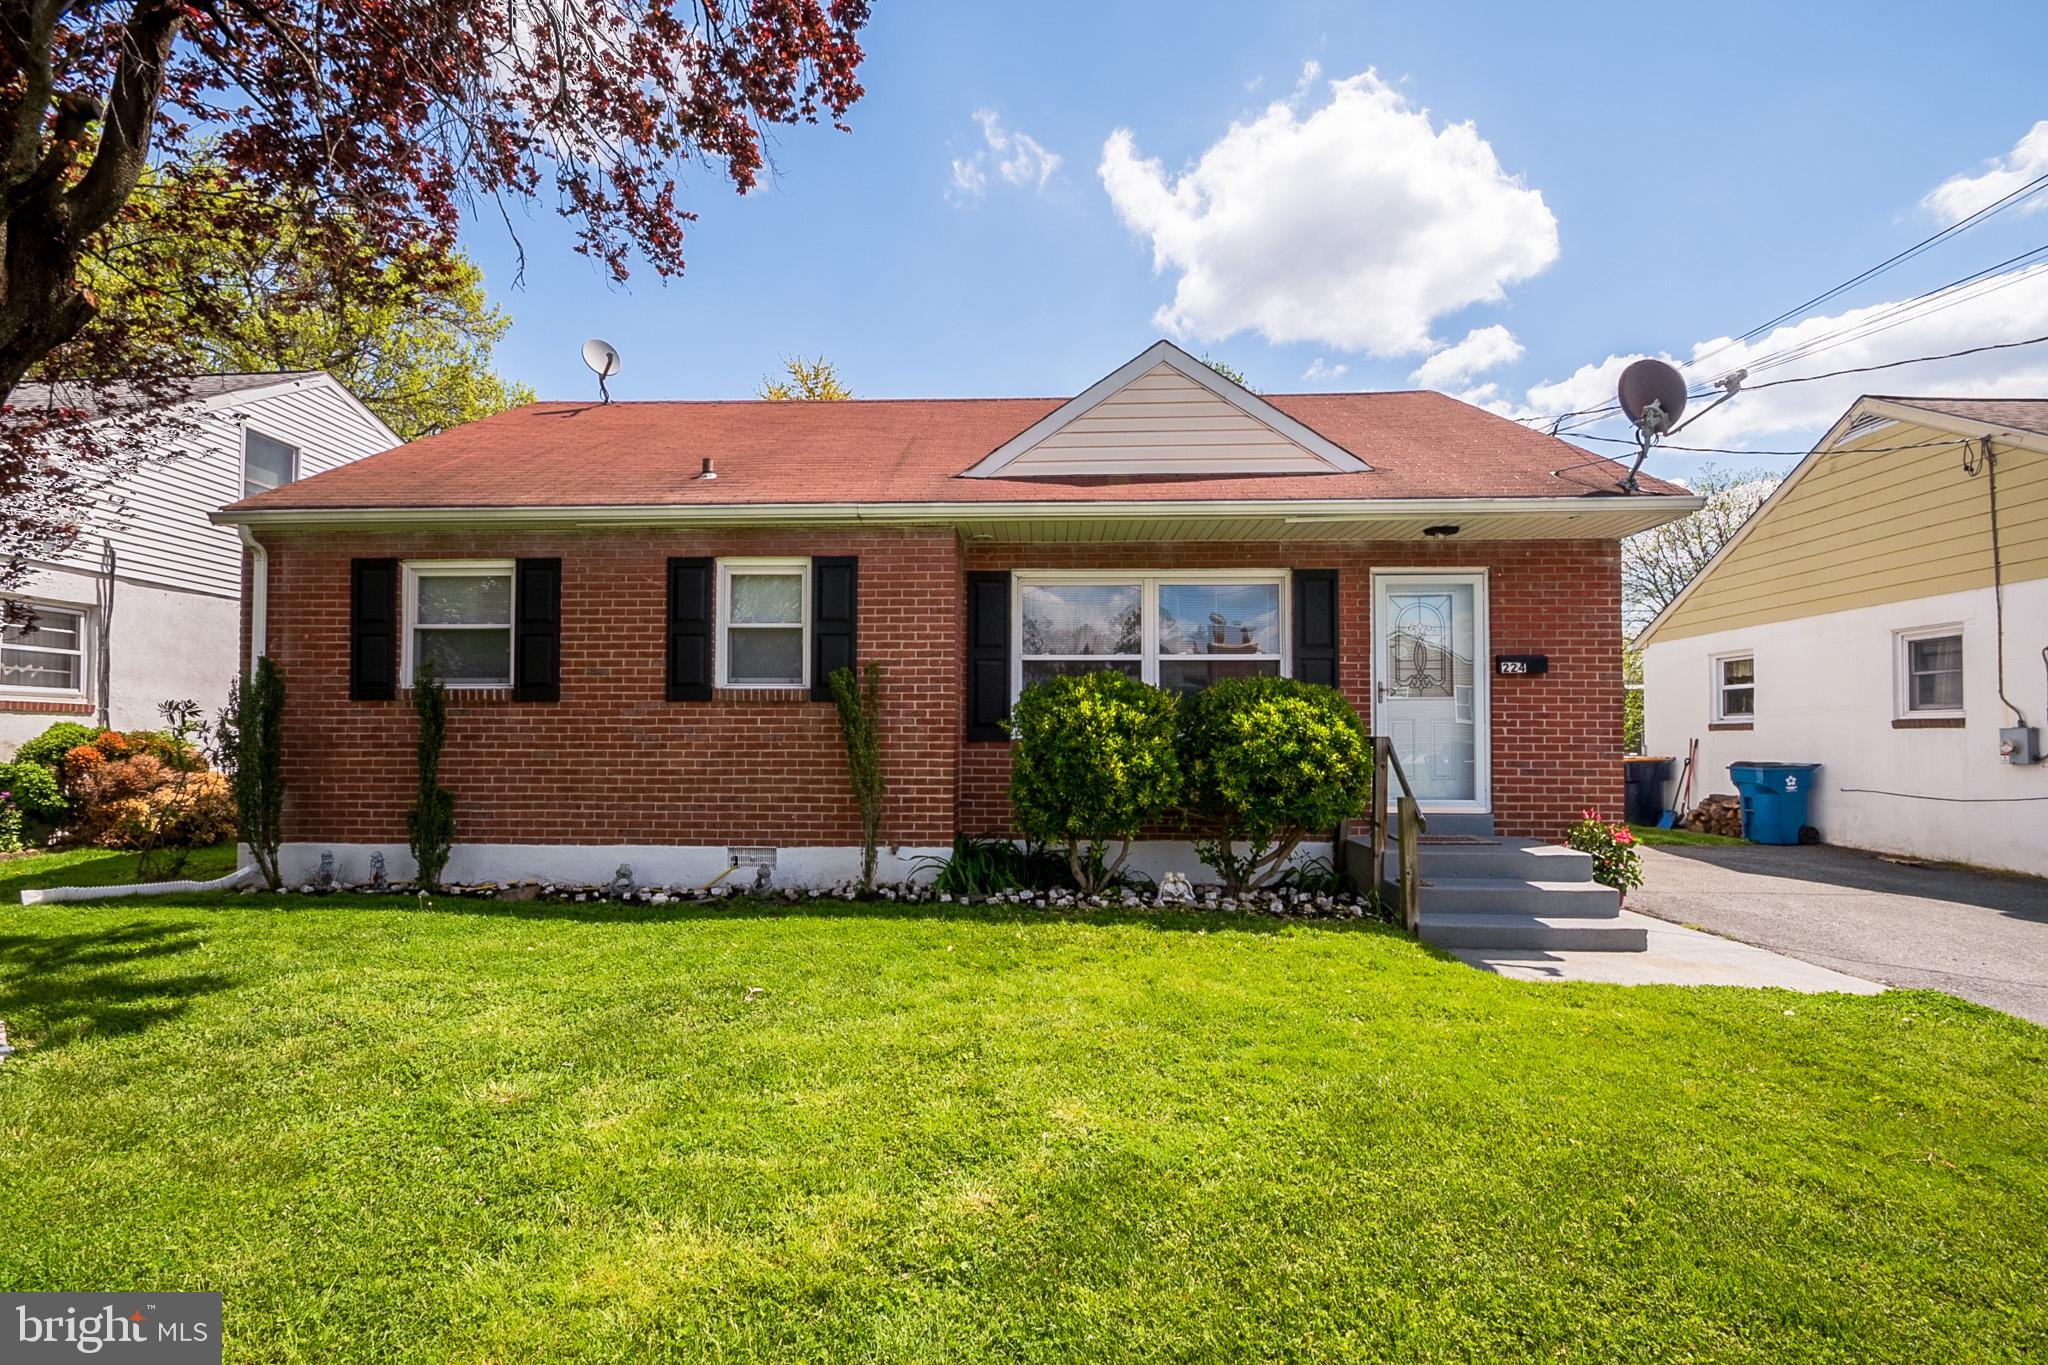 Beautifully updated 3 bedroom 1 bath brick ranch located in Elsmere Gardens with great curb appeal!